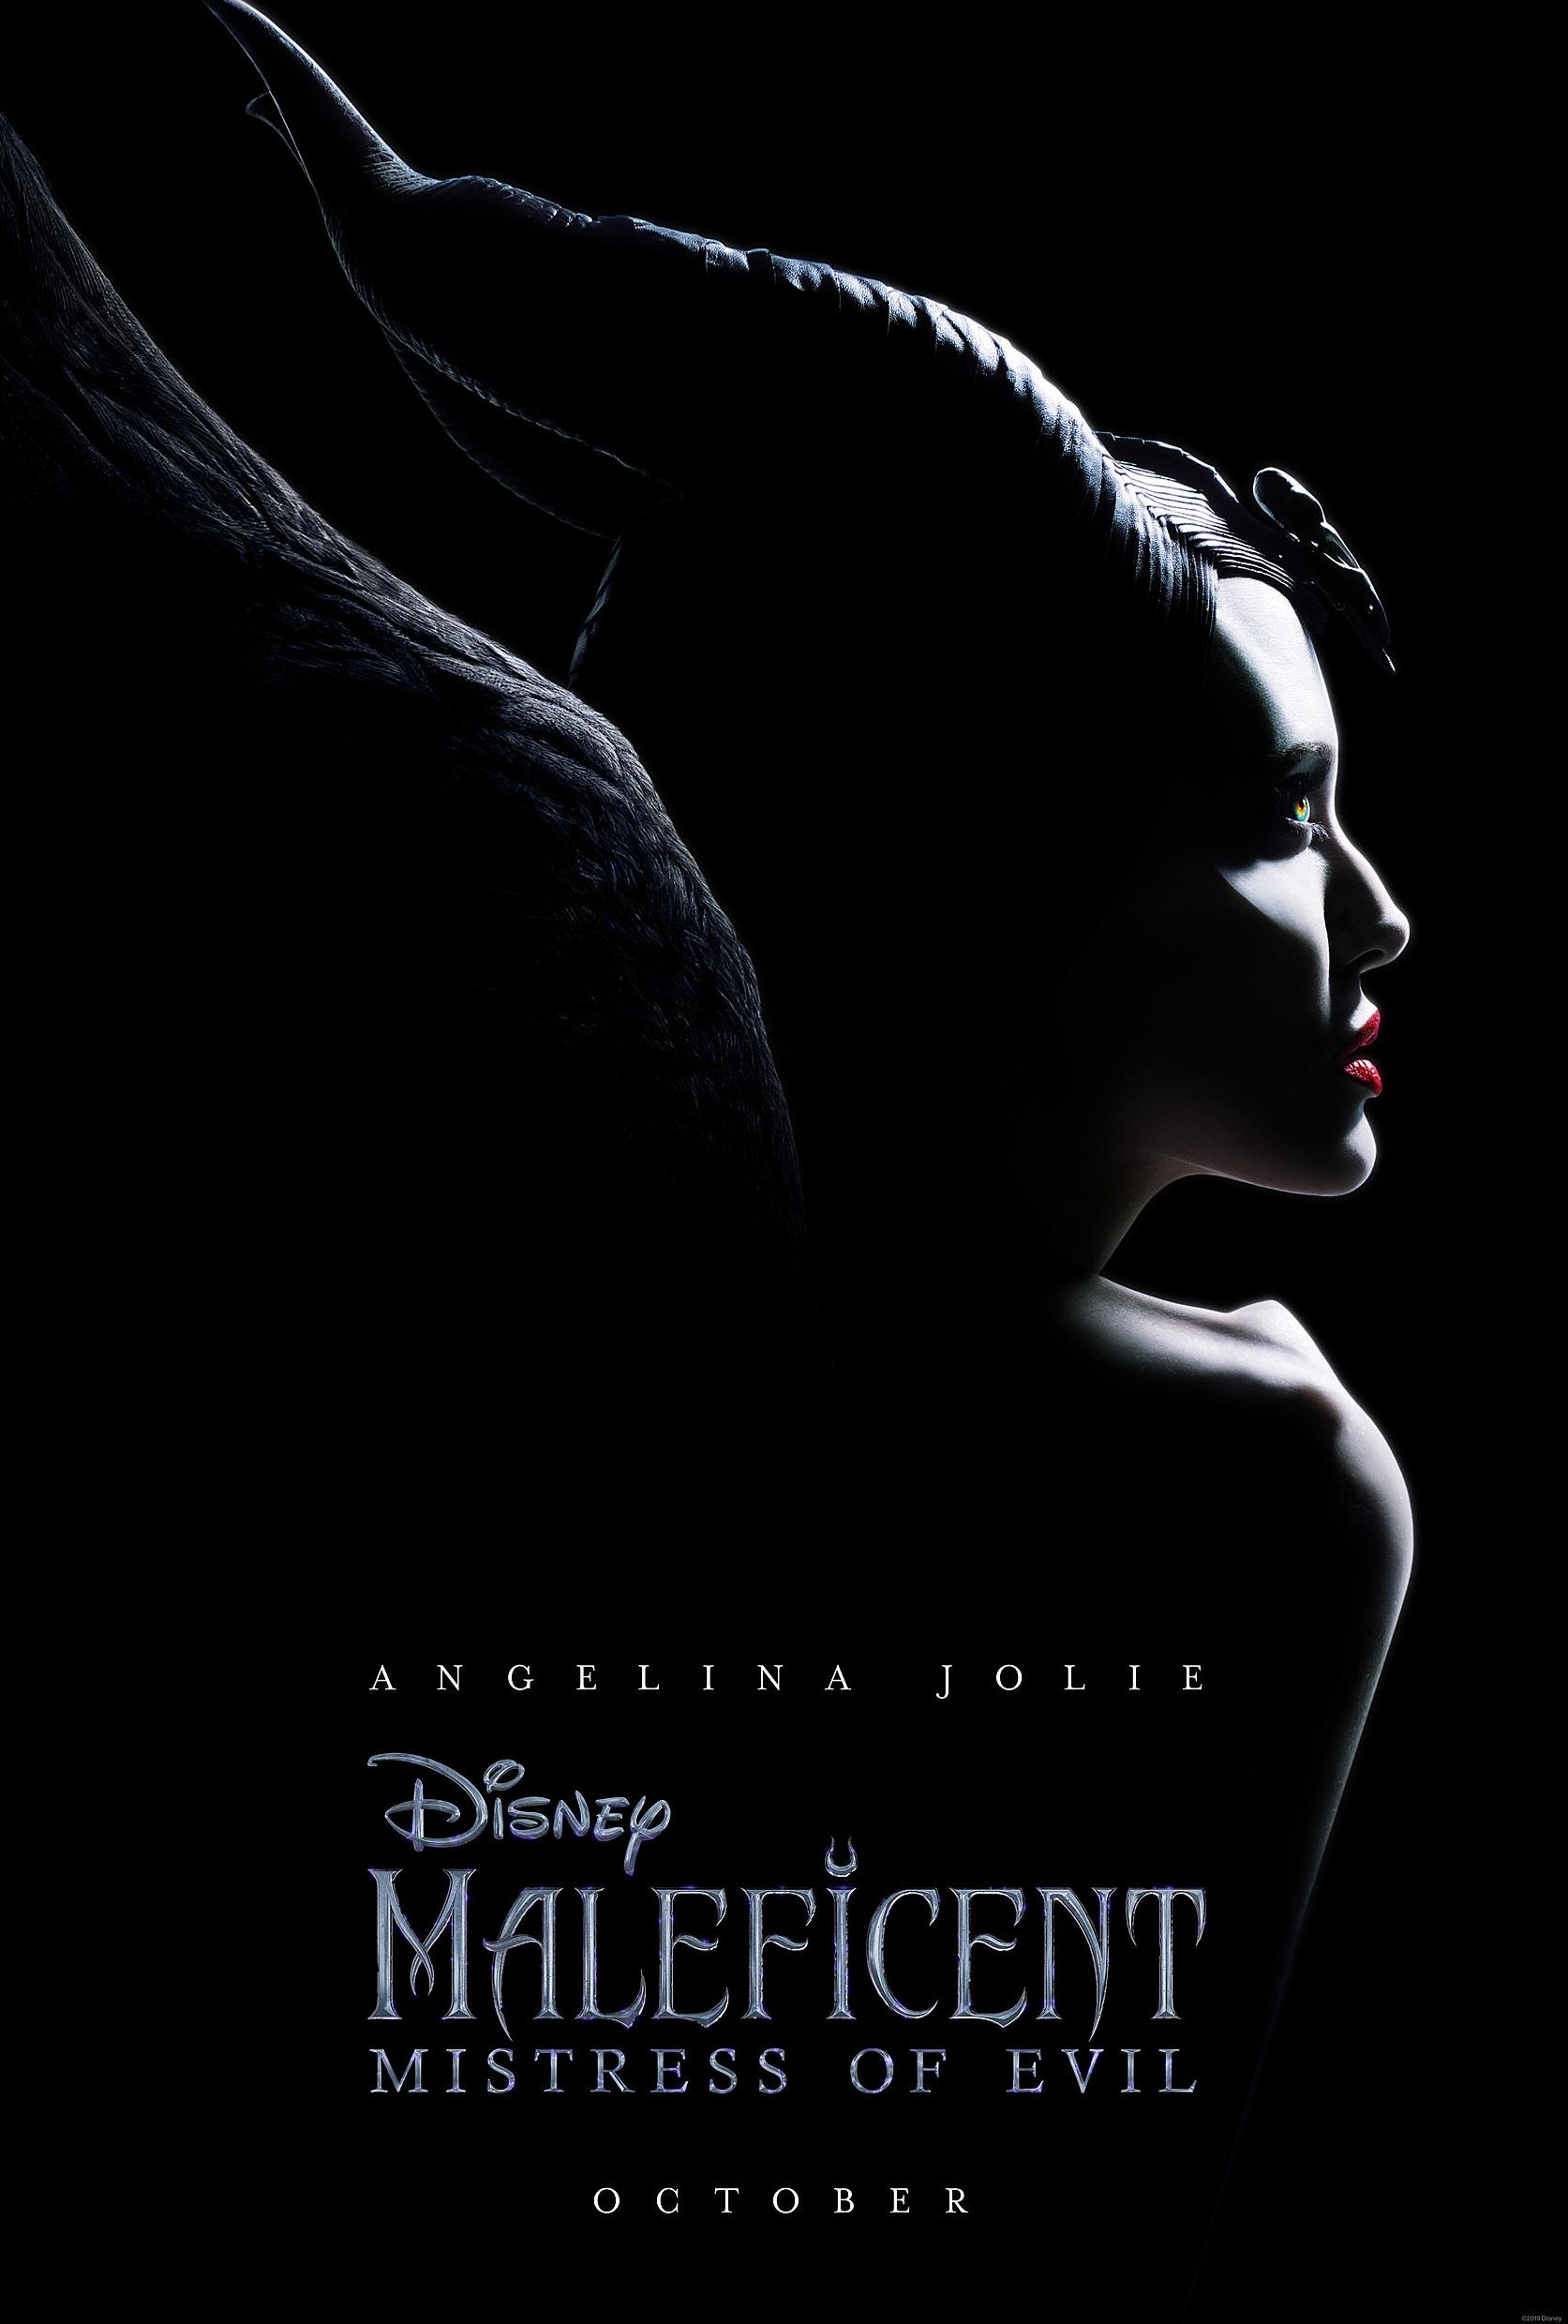 'Maleficent: Mistress of Evil' Walt Disney Studios